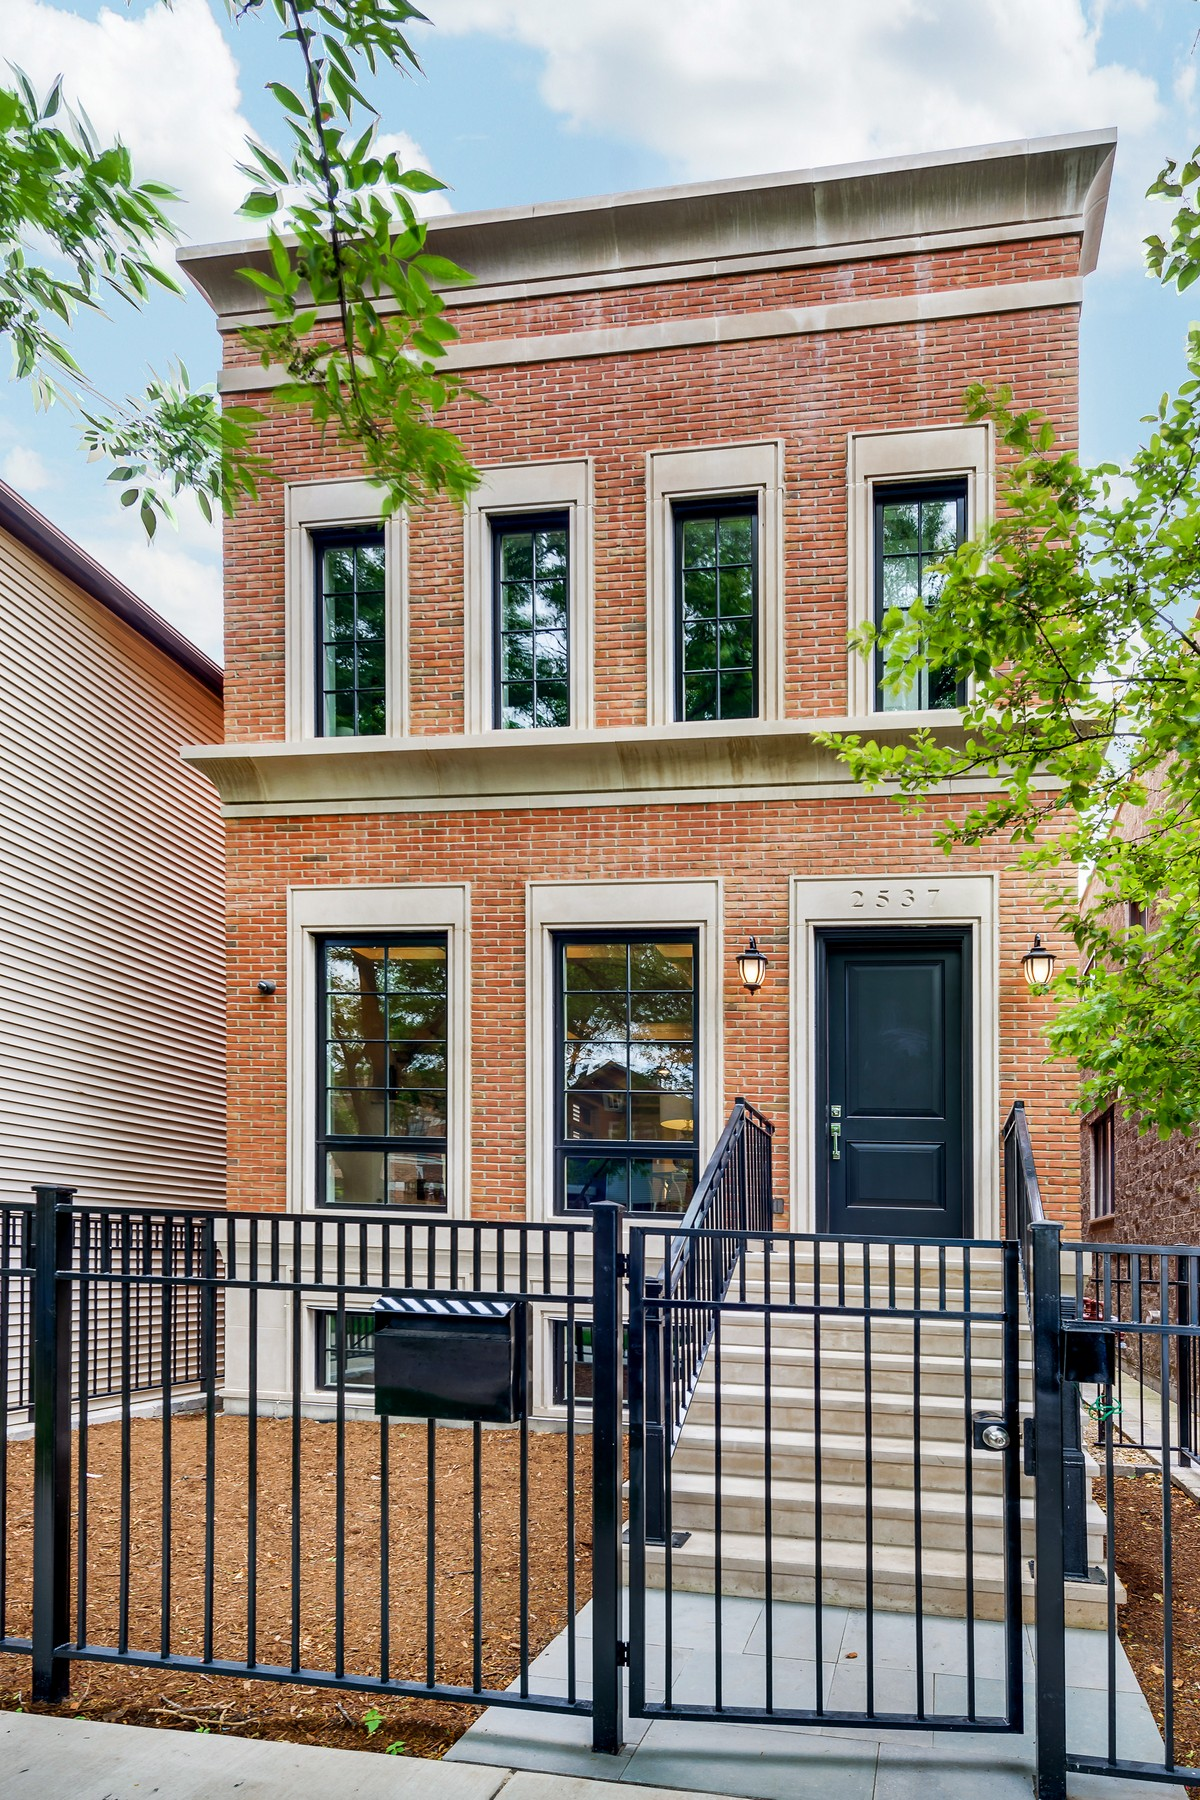 Частный односемейный дом для того Продажа на Beautiful Complete Construction - Move In Ready 2537 N Marshfield Avenue Lincoln Park, Chicago, Иллинойс, 60614 Соединенные Штаты